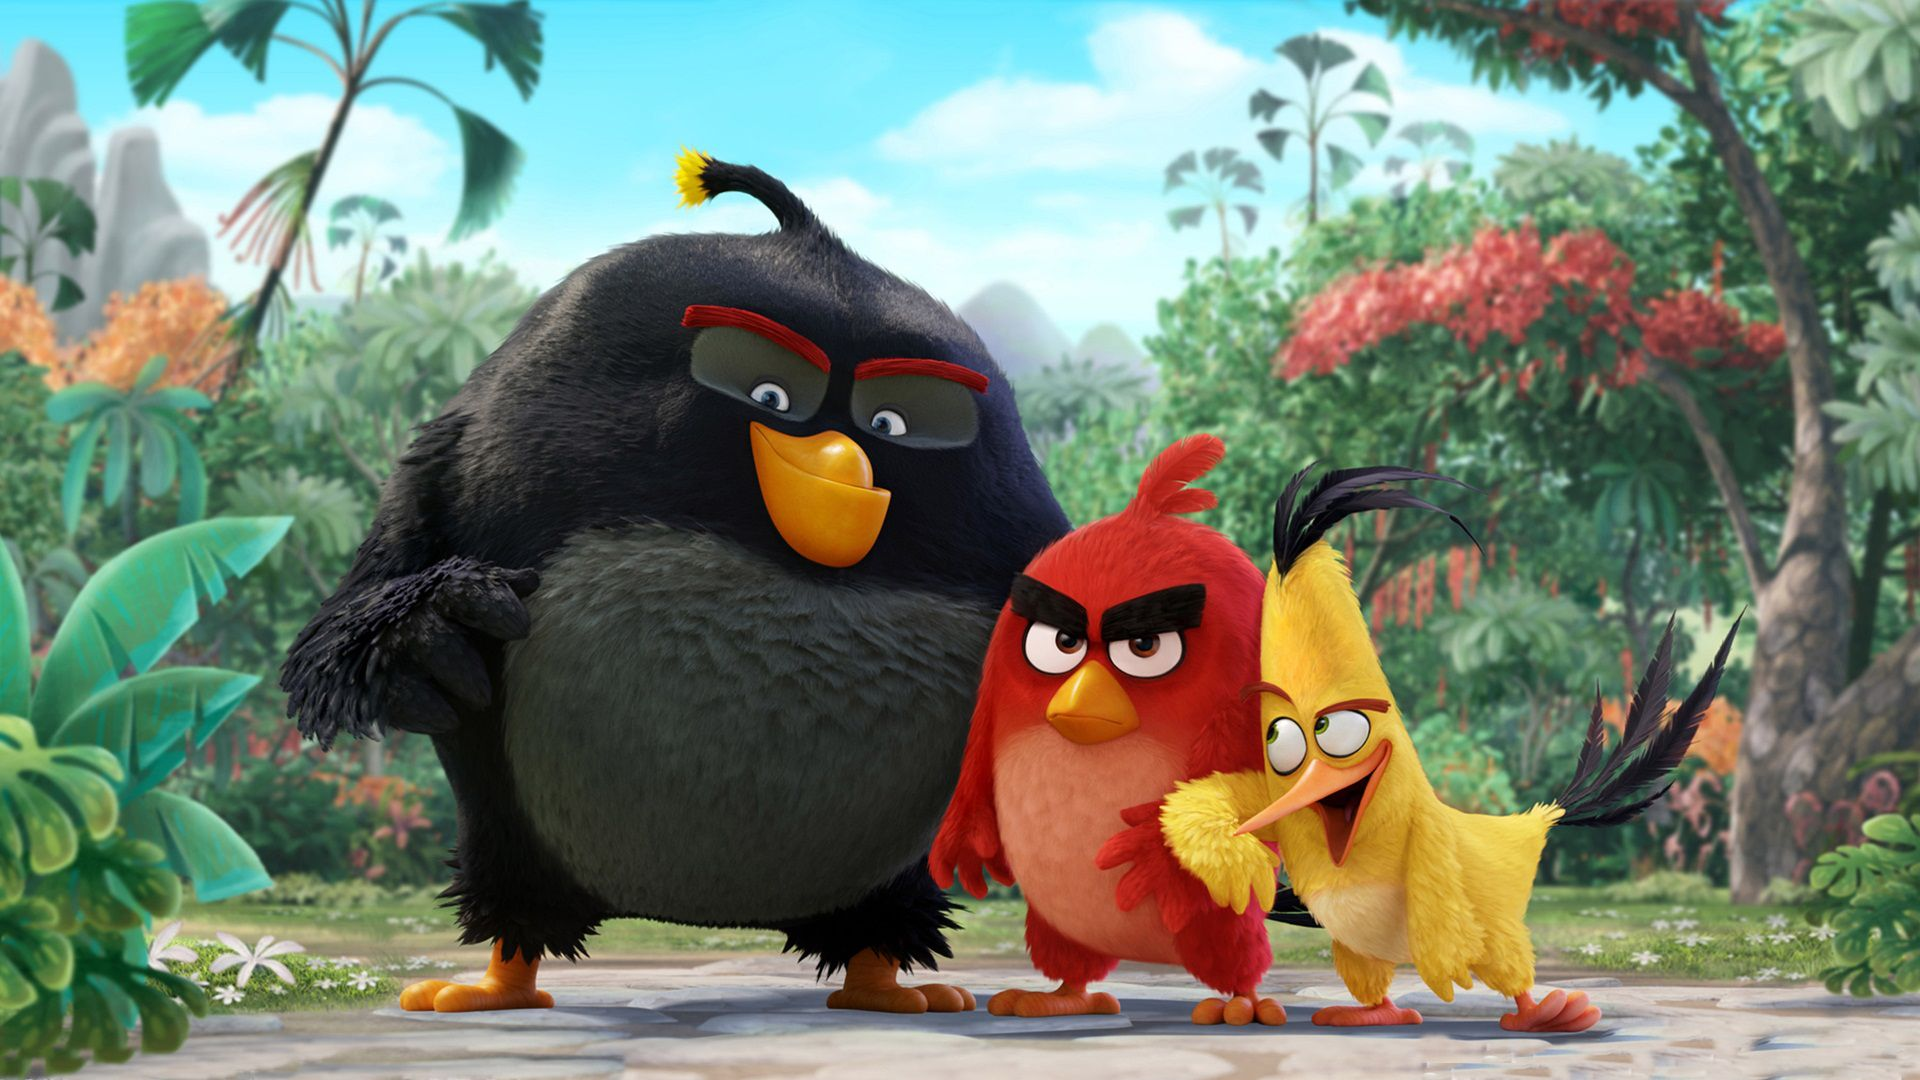 The Angry Birds Movie: la bande-annonce officielle (Jason Sudeikis, Bill Hader, Josh Gad)